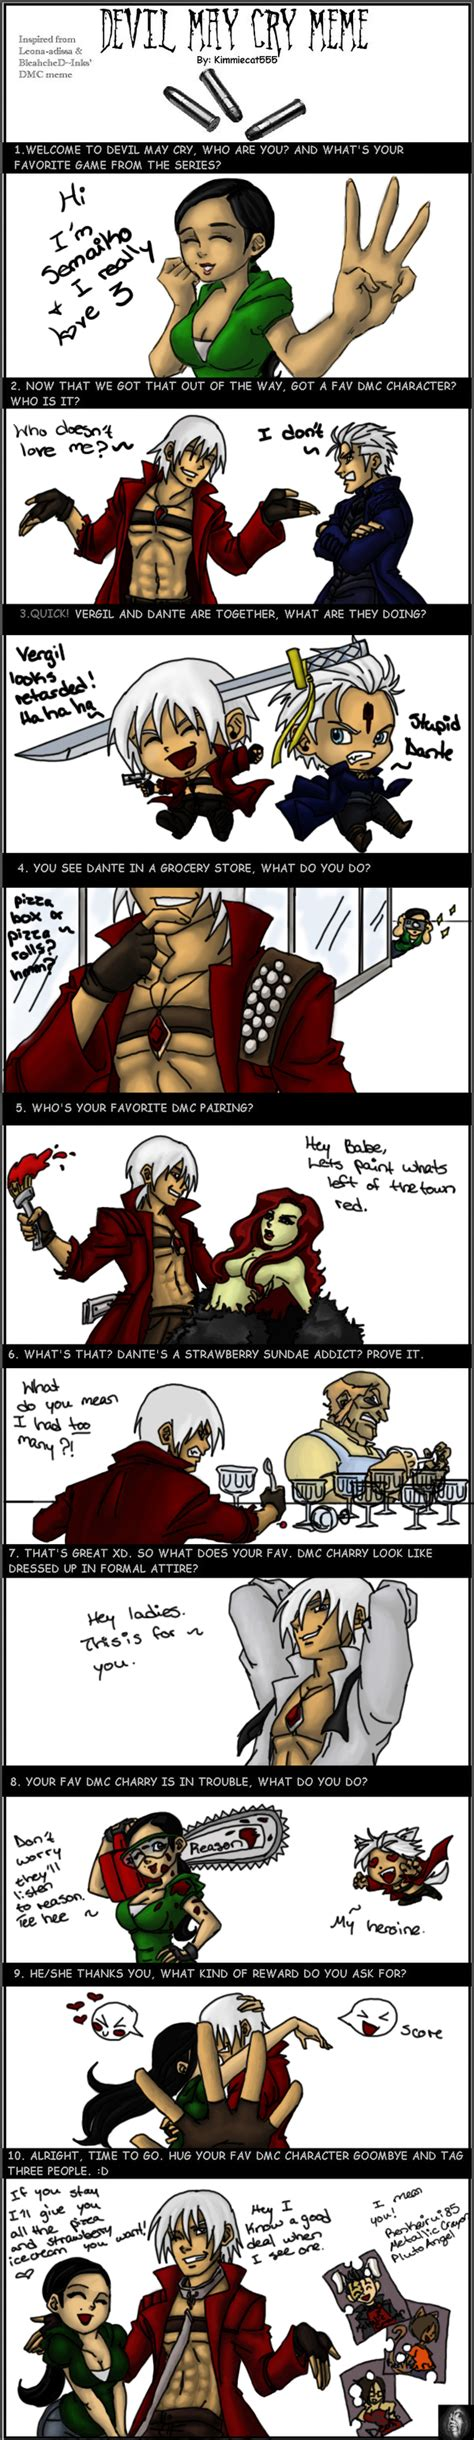 Devil May Cry Memes - devil may cry meme by semaiko on deviantart